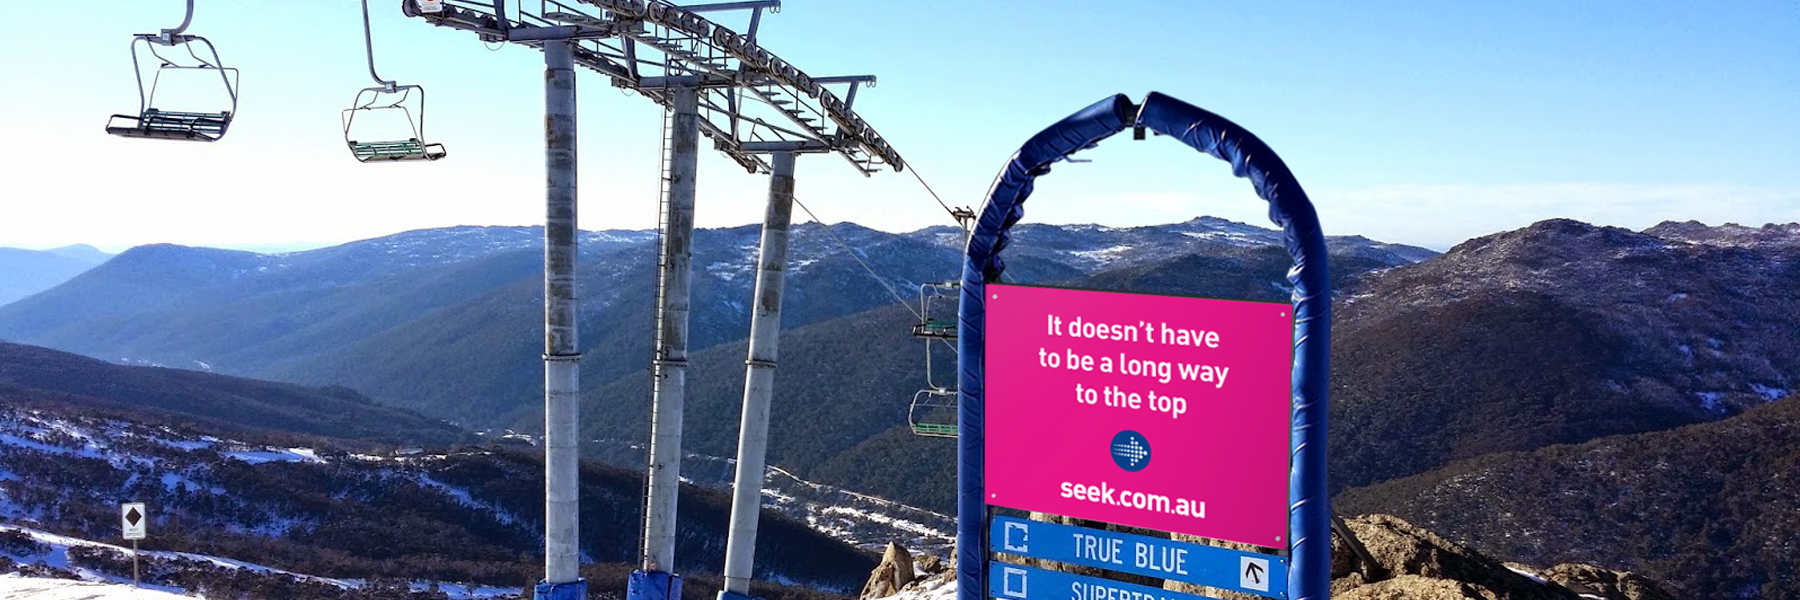 Seek - Creative Ski Advertising Campaign